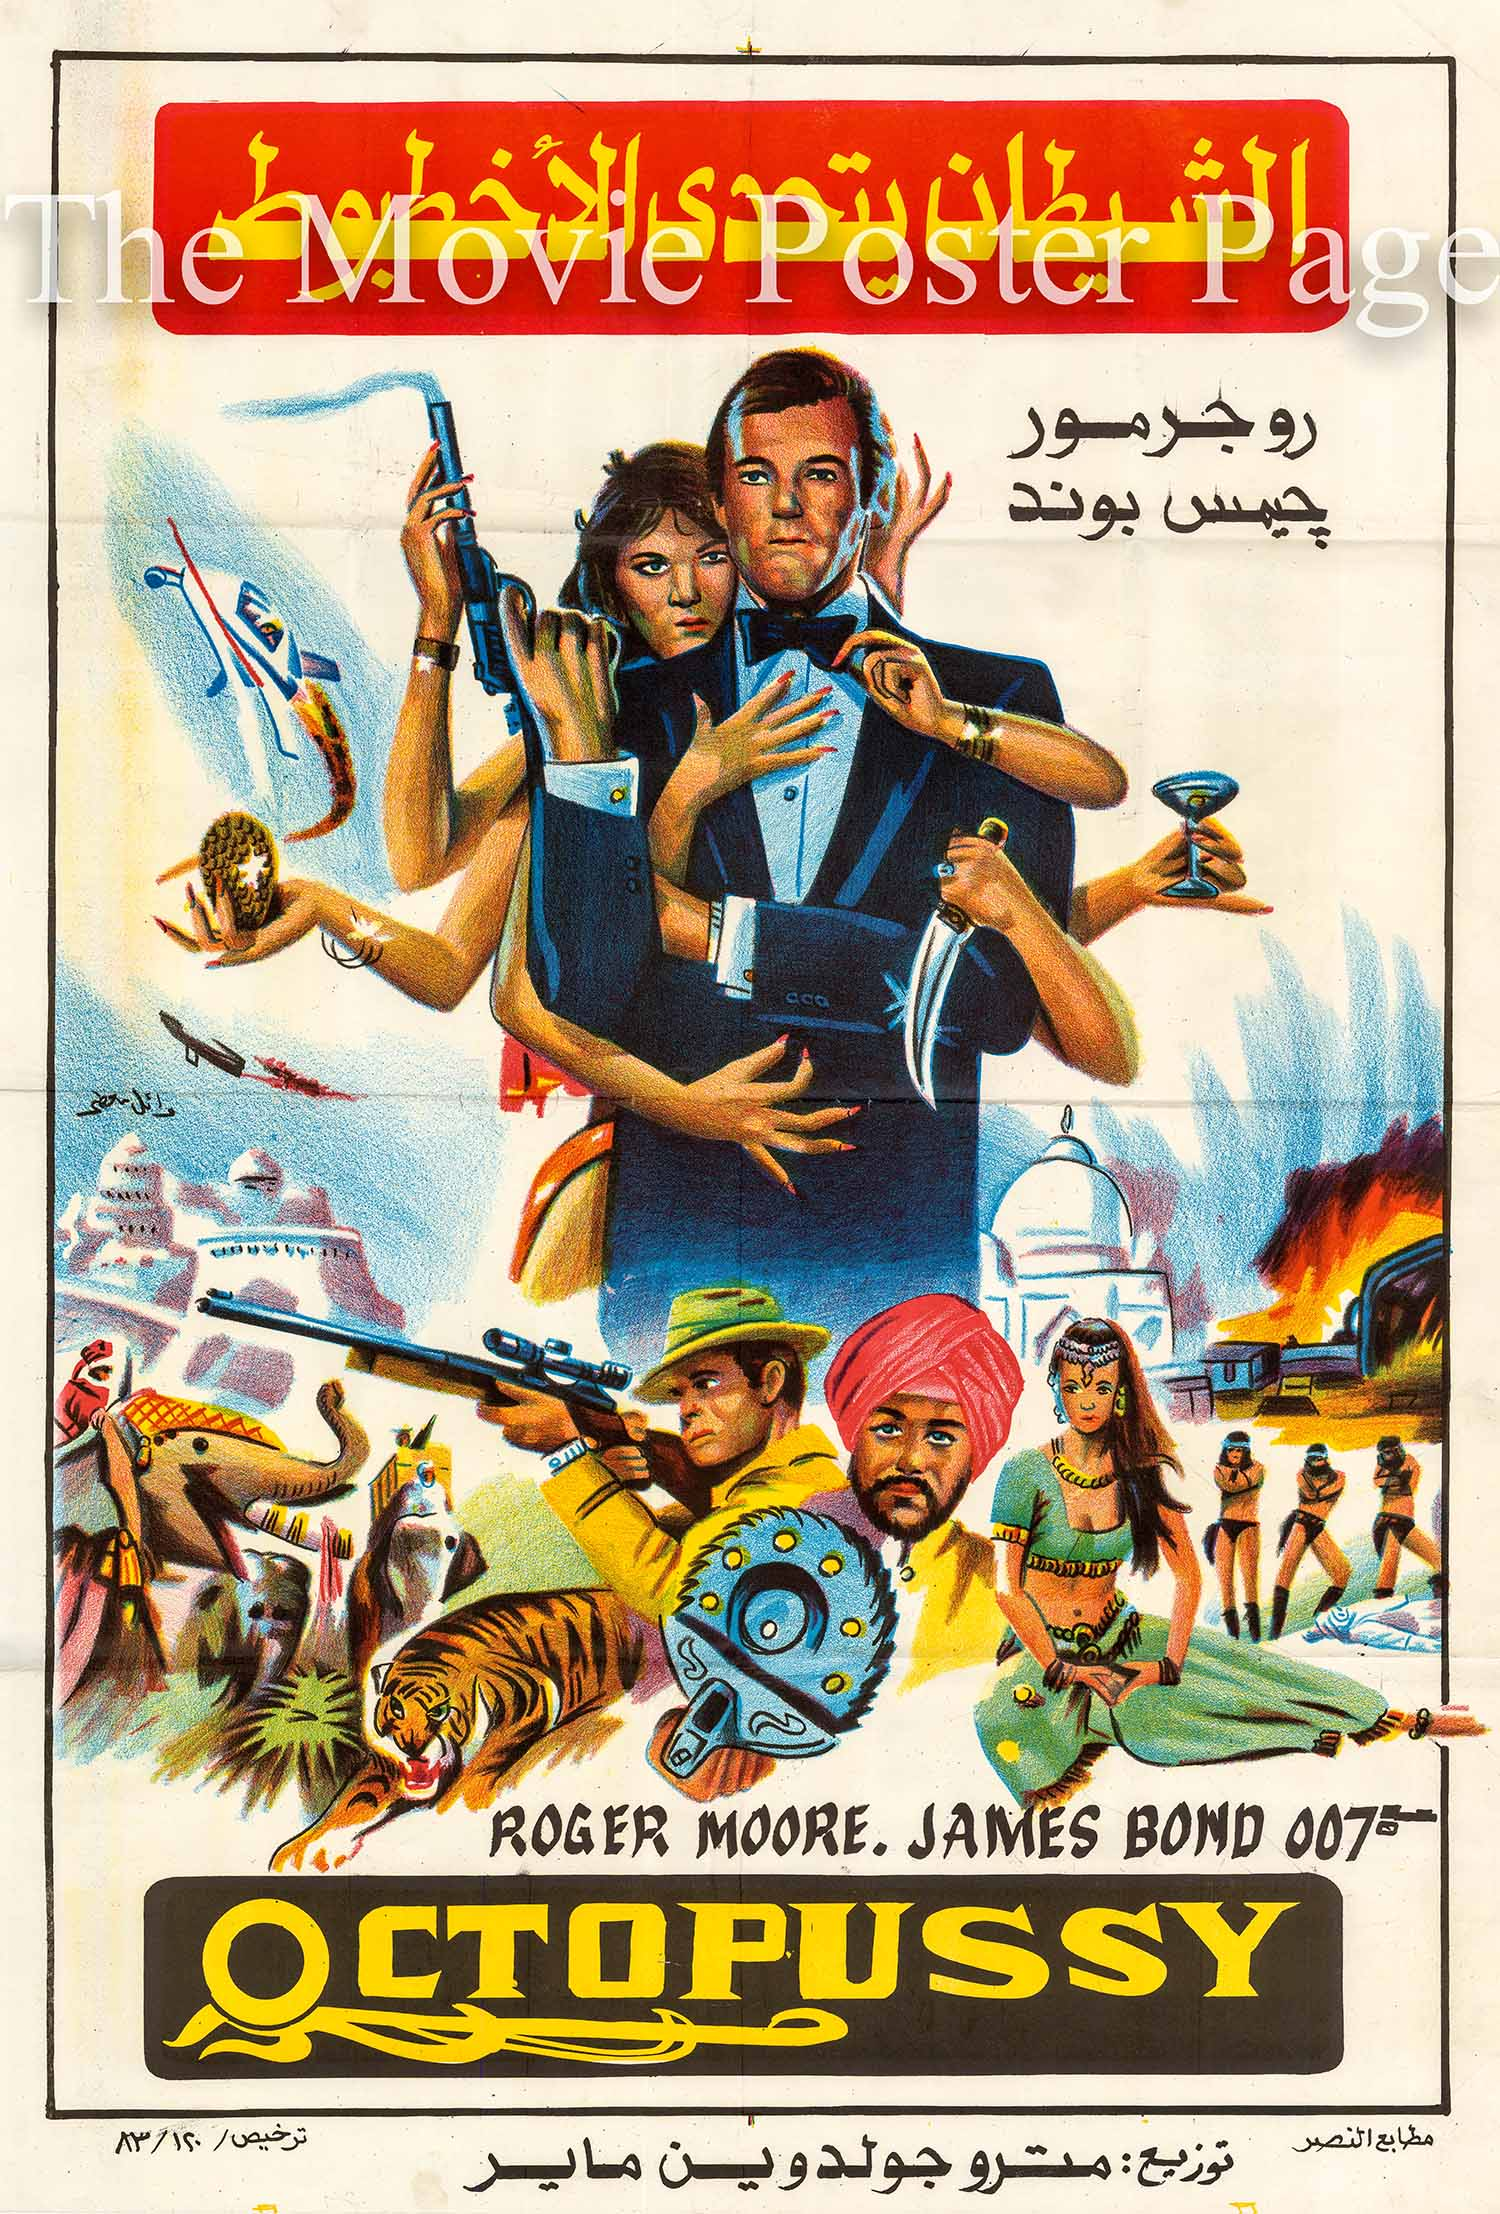 Pictured is an Egyptian promotional poster for the 1983 John Glen film Octopussy starring Roger Moore and Maud Adams.